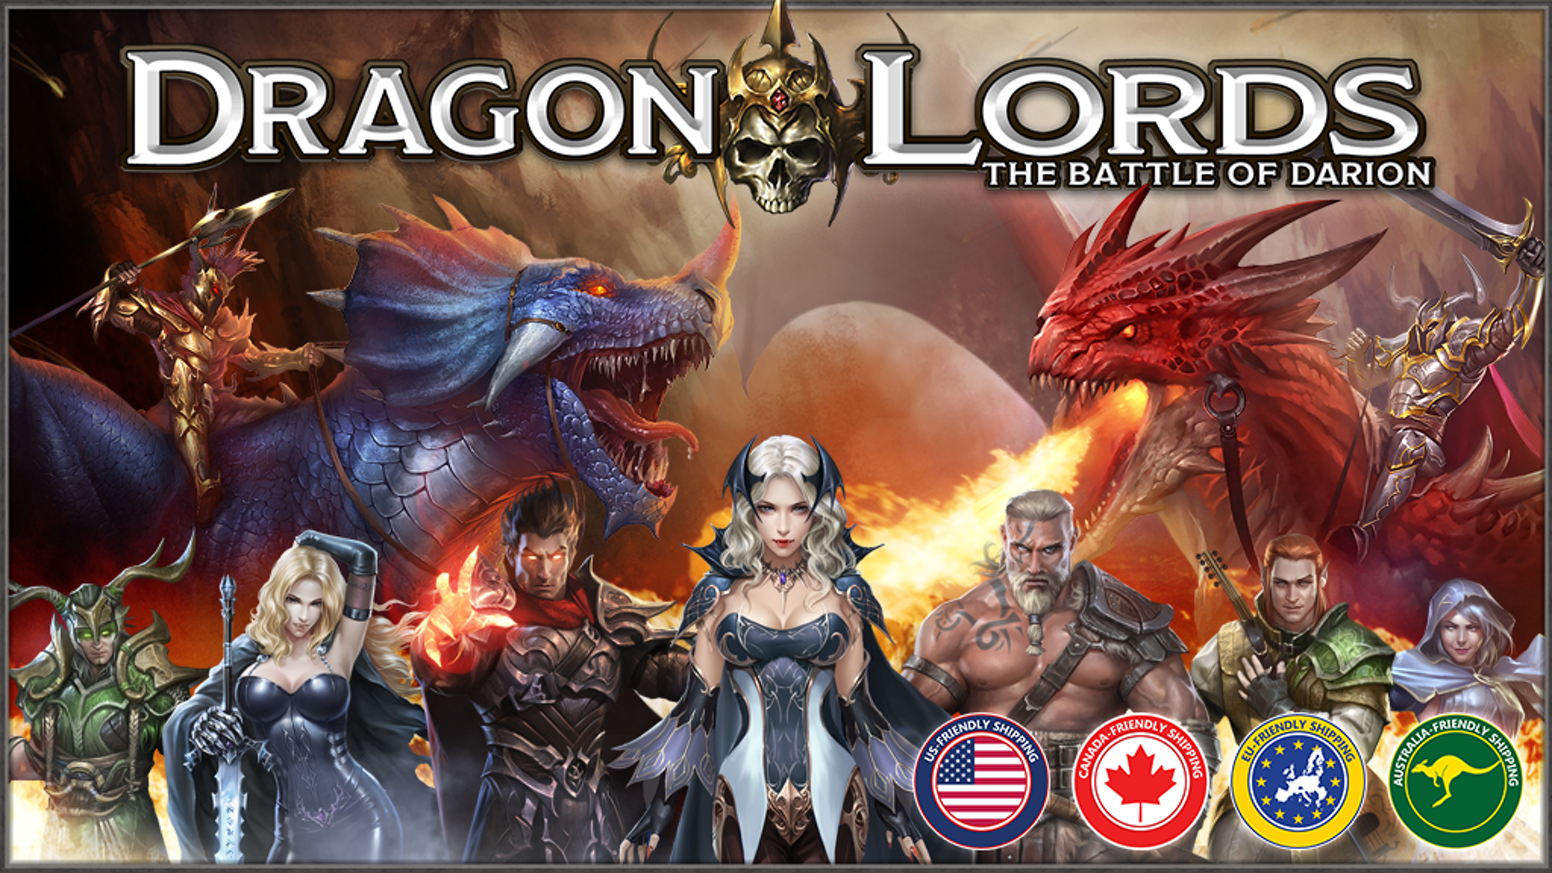 A skirmish-based card game, in which 2 players build armies and battle head to head.